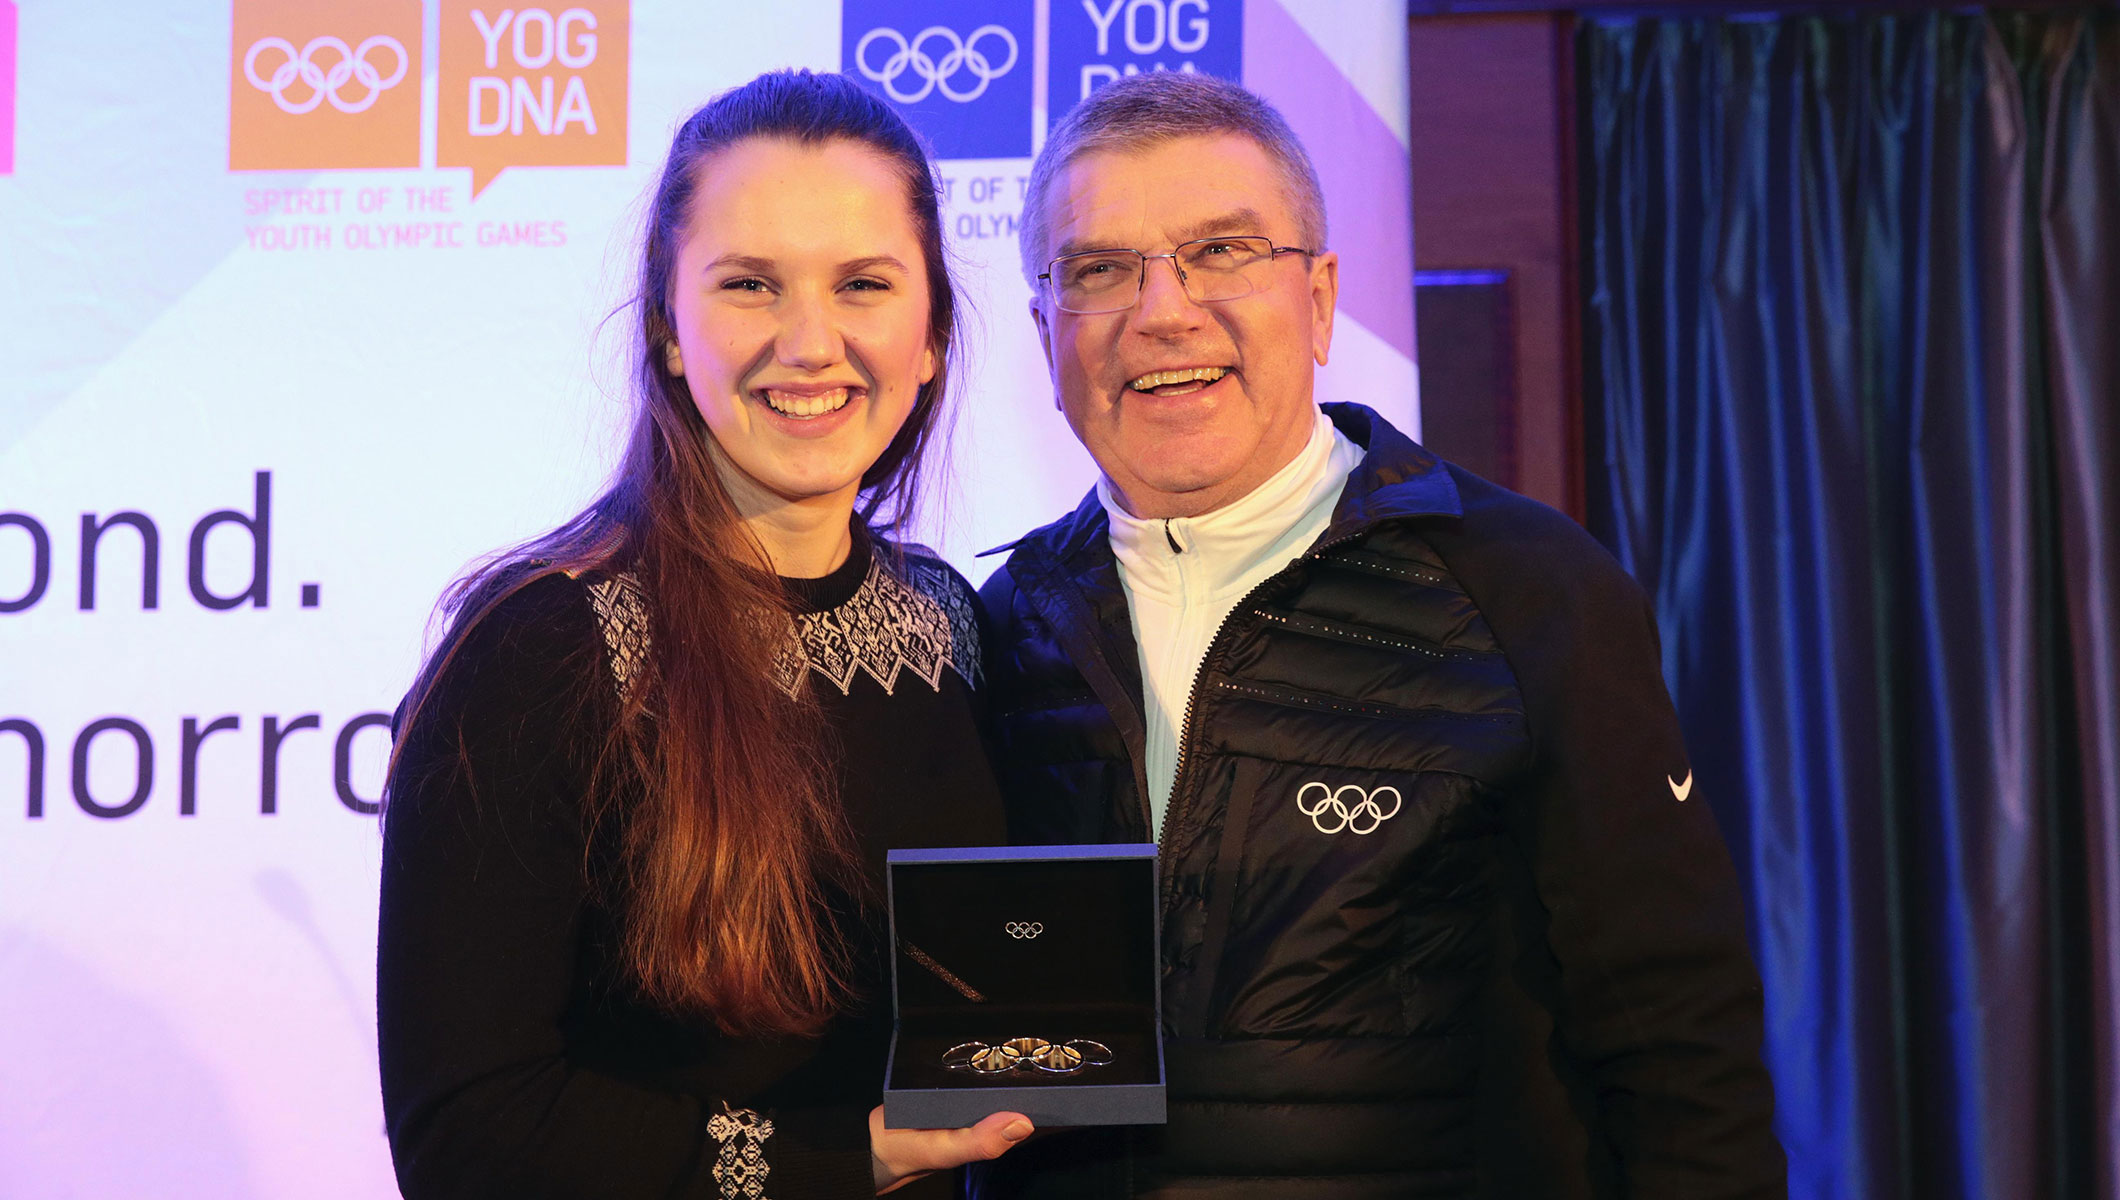 Runa Møller Tangstad and IOC President Thomas Bach